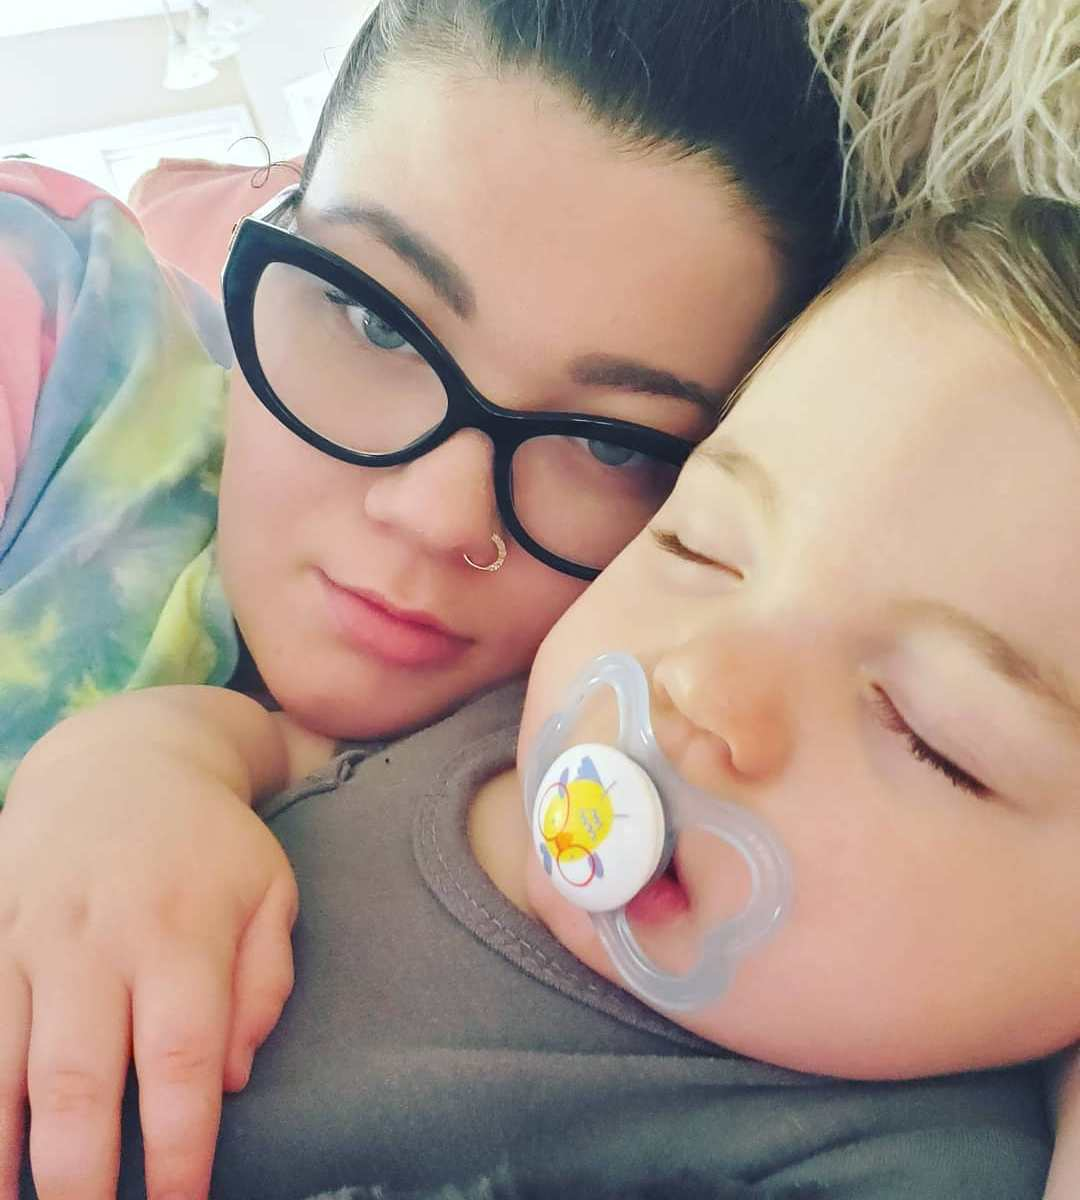 Teen Mom OG's Amber Portwood Granted Supervised Visits With Son